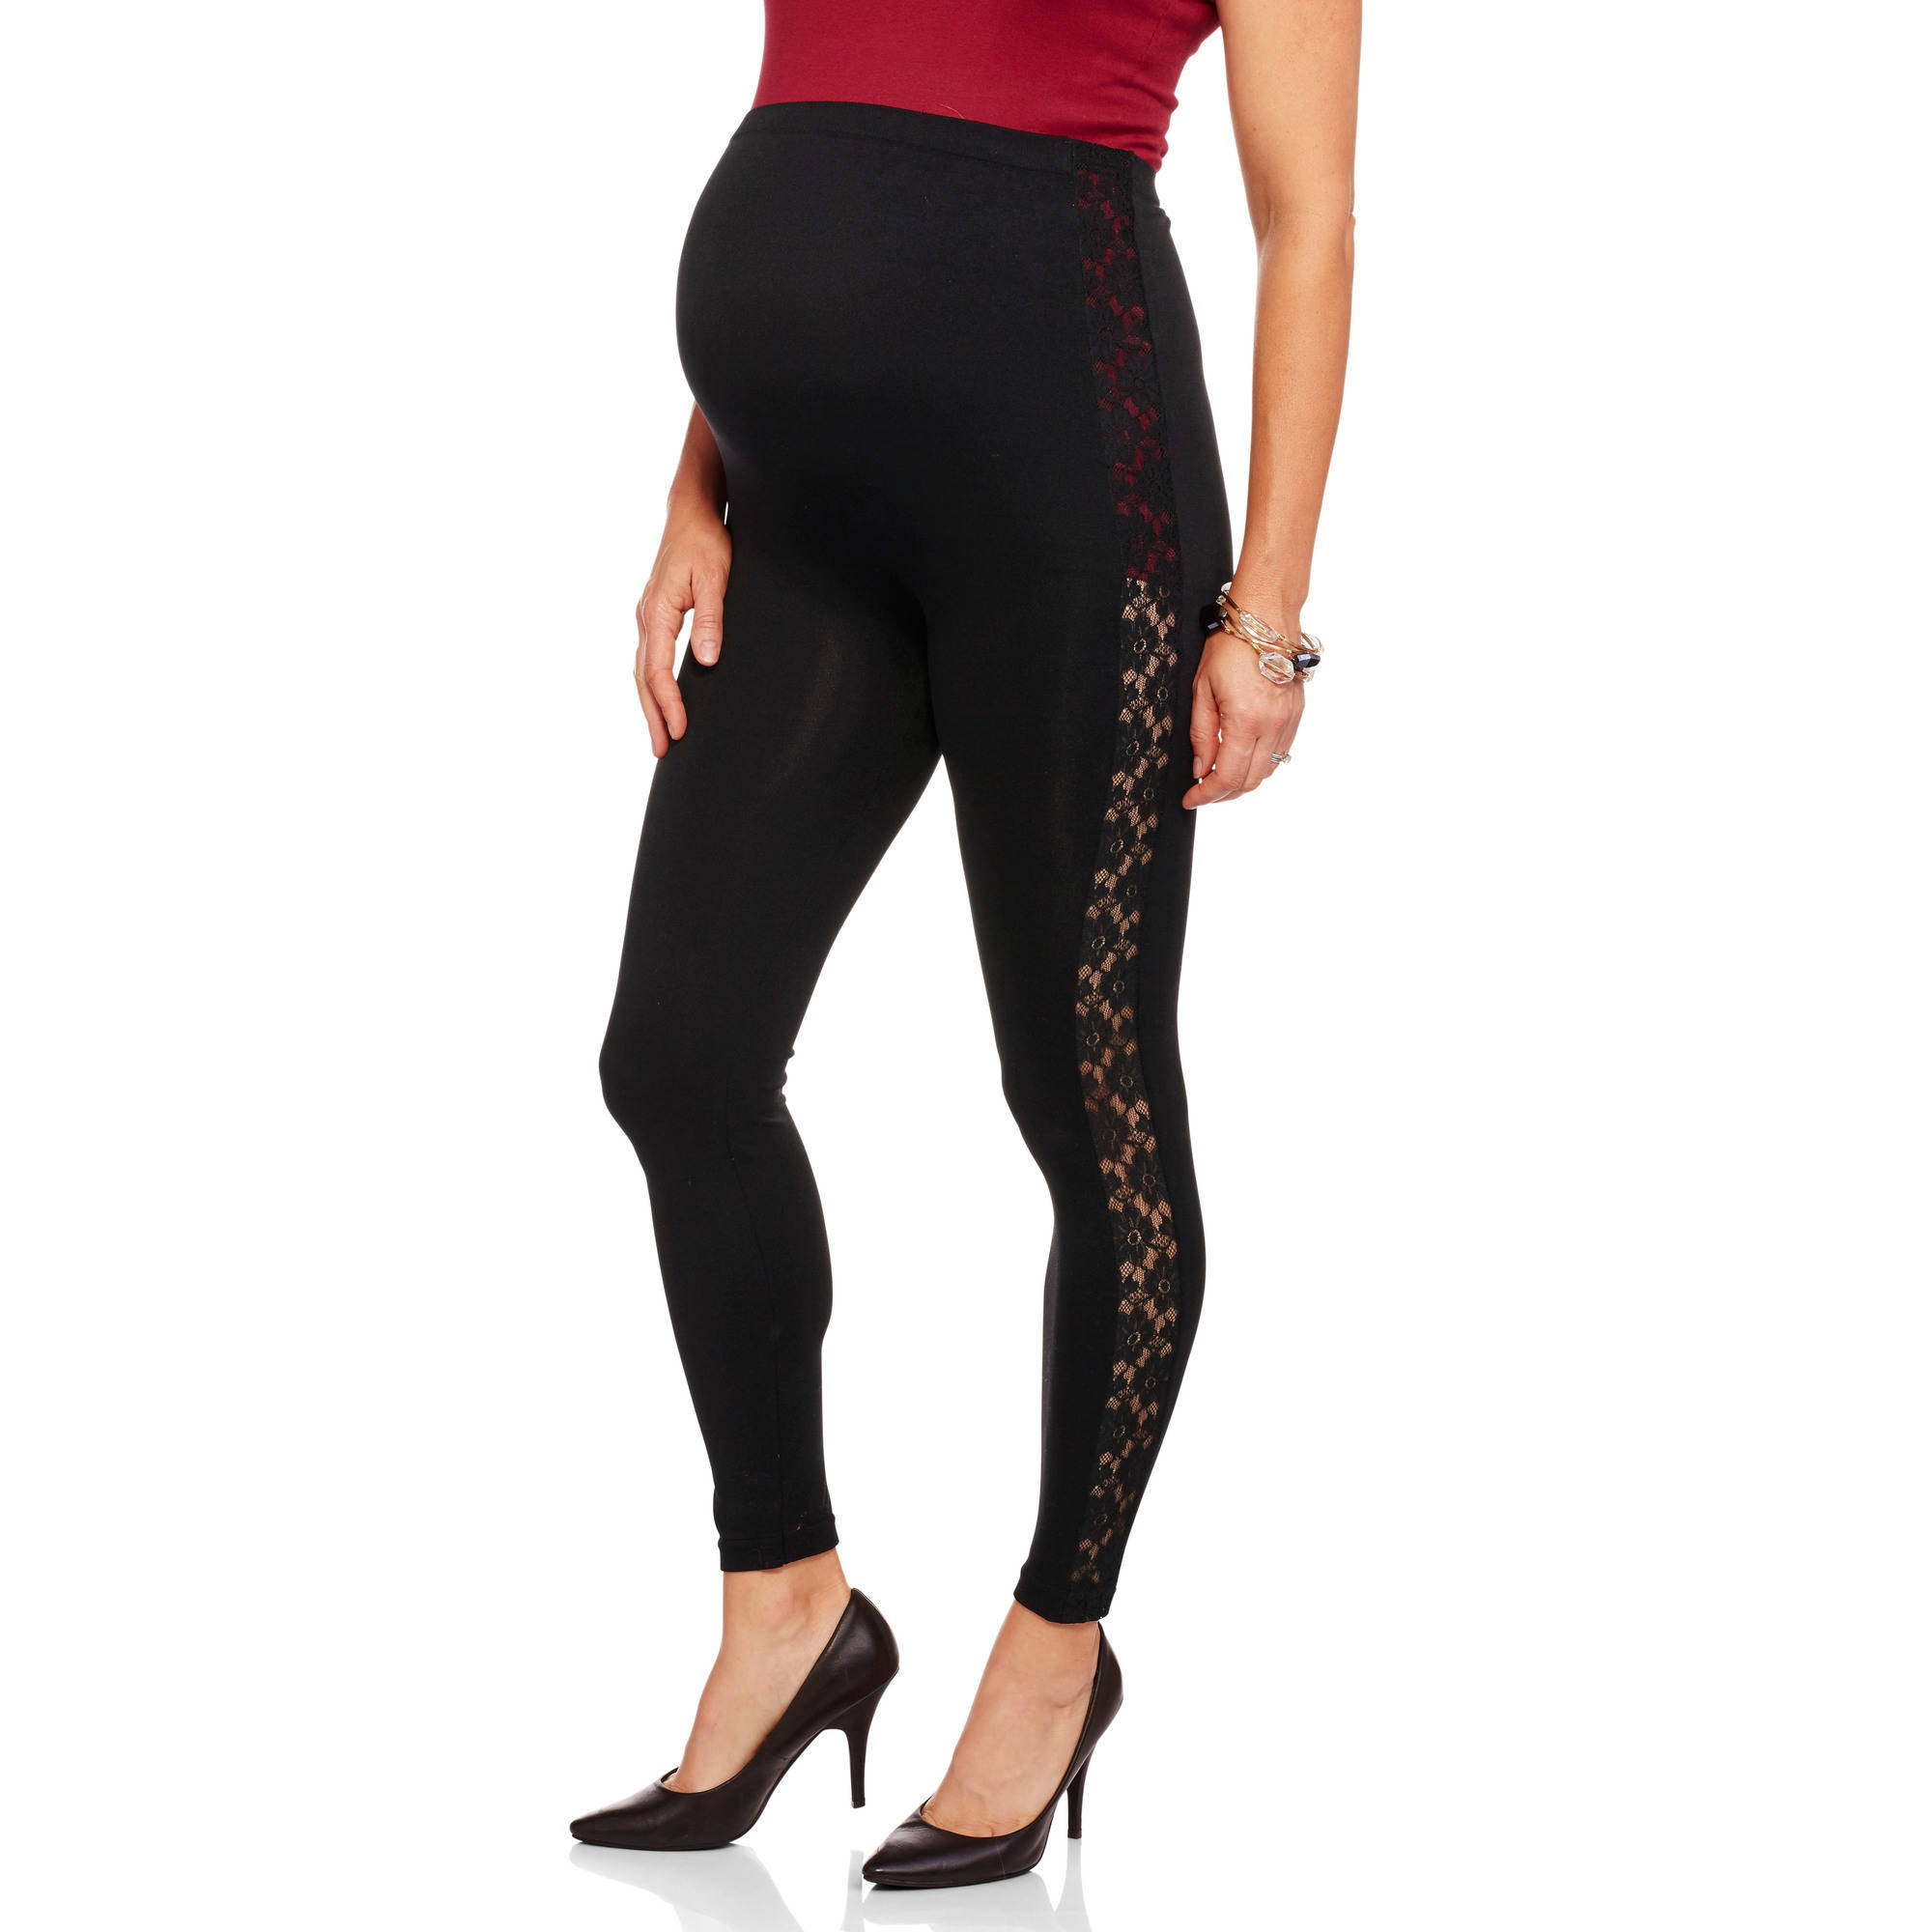 Inspire Maternity Full Panel Leggings with Lace Insert